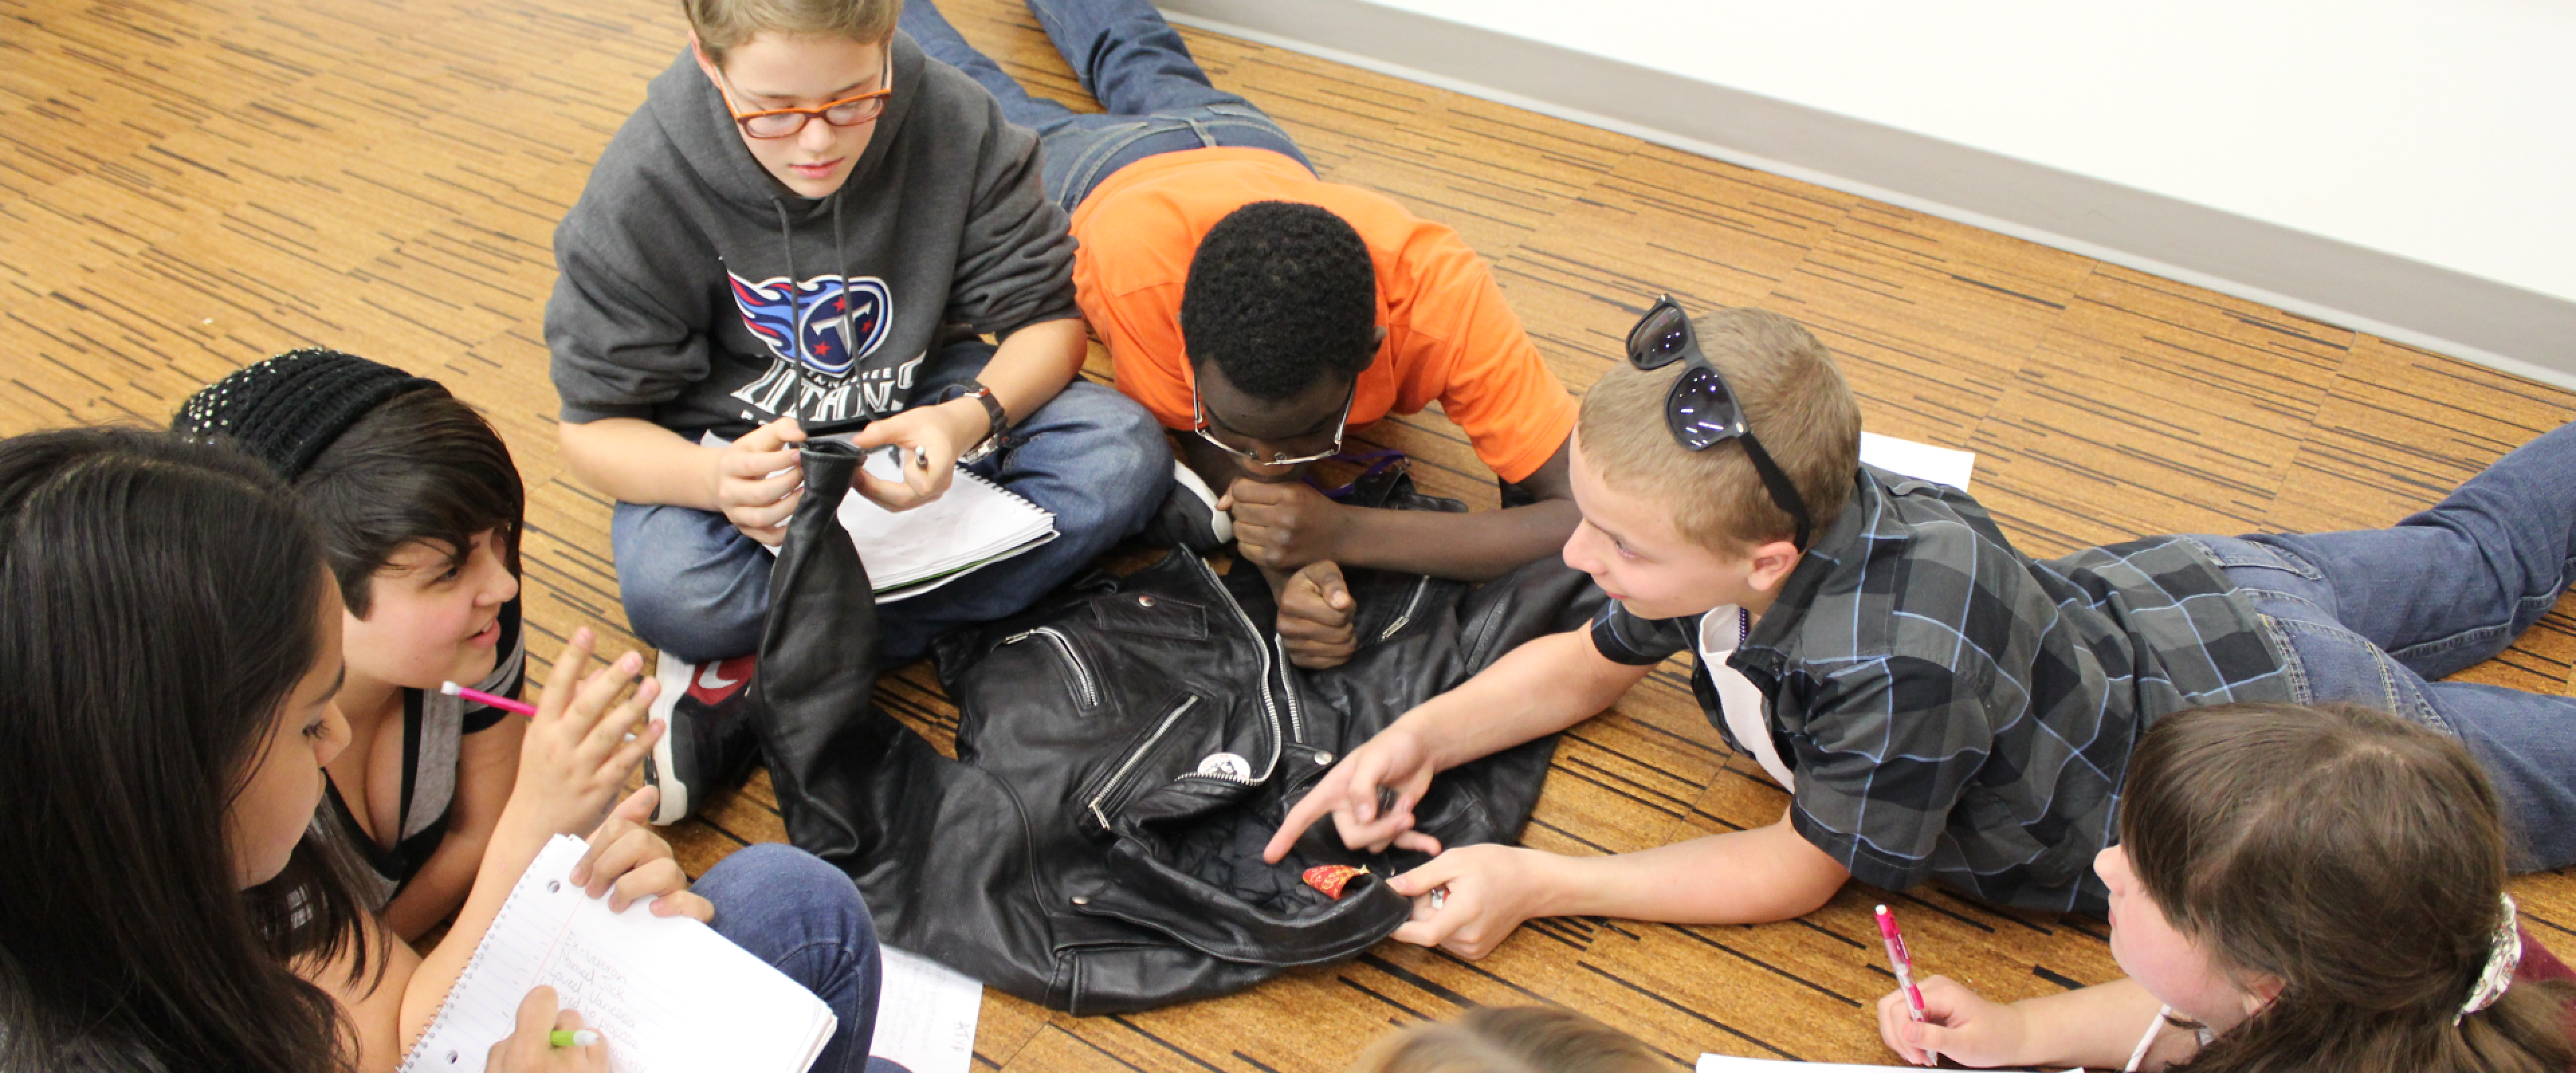 Several students gathered around a jacket discussing their observations.